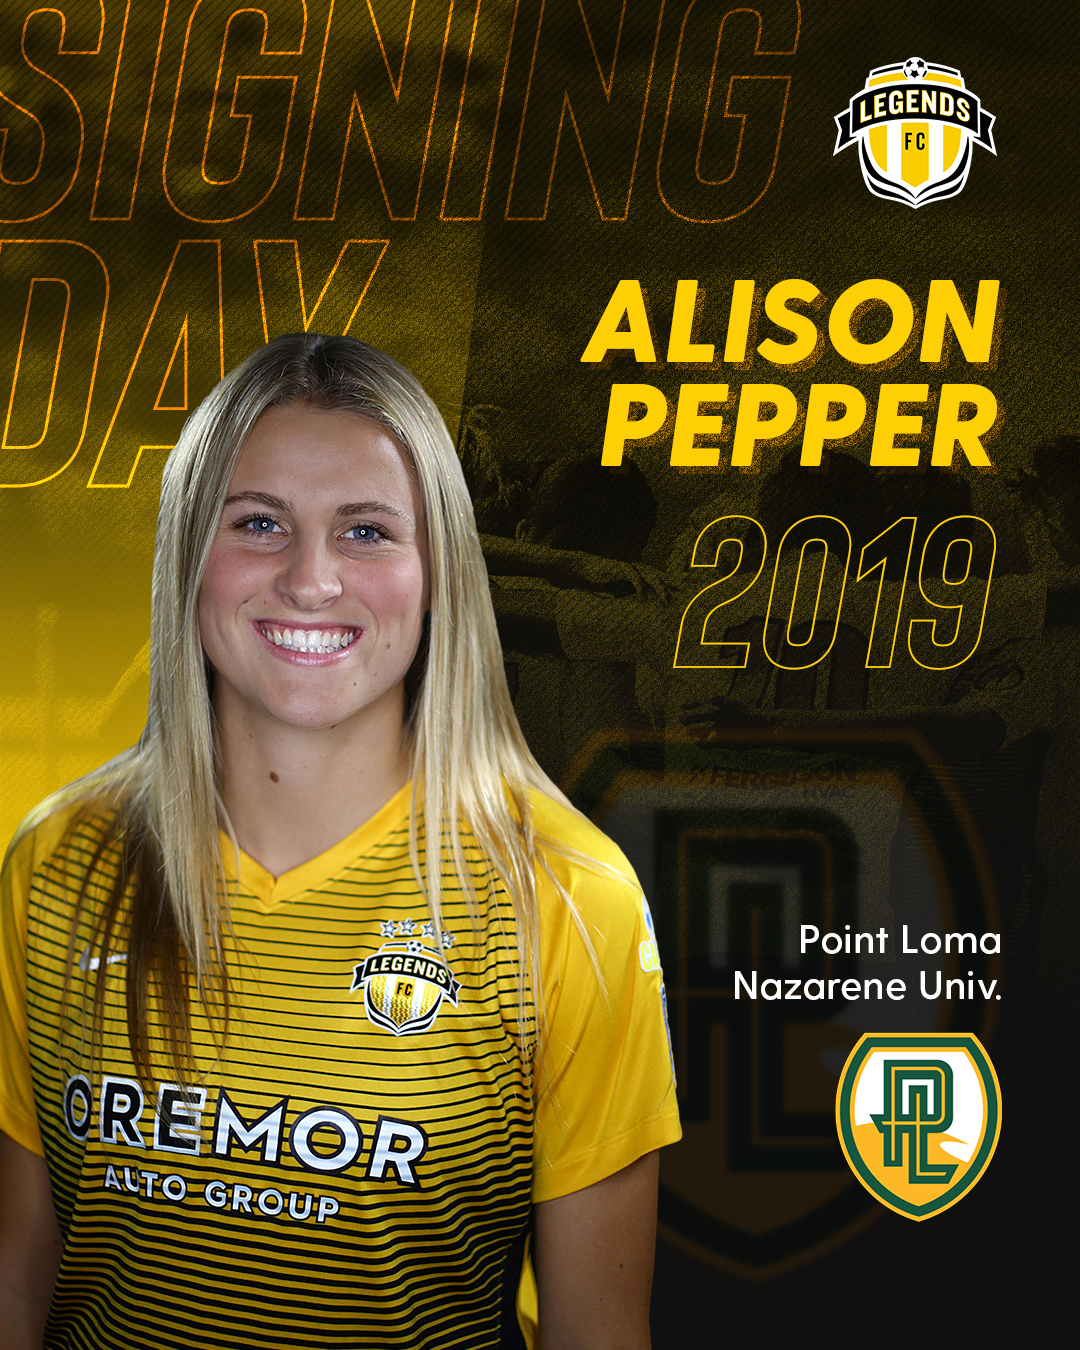 alisson-pepper.jpg